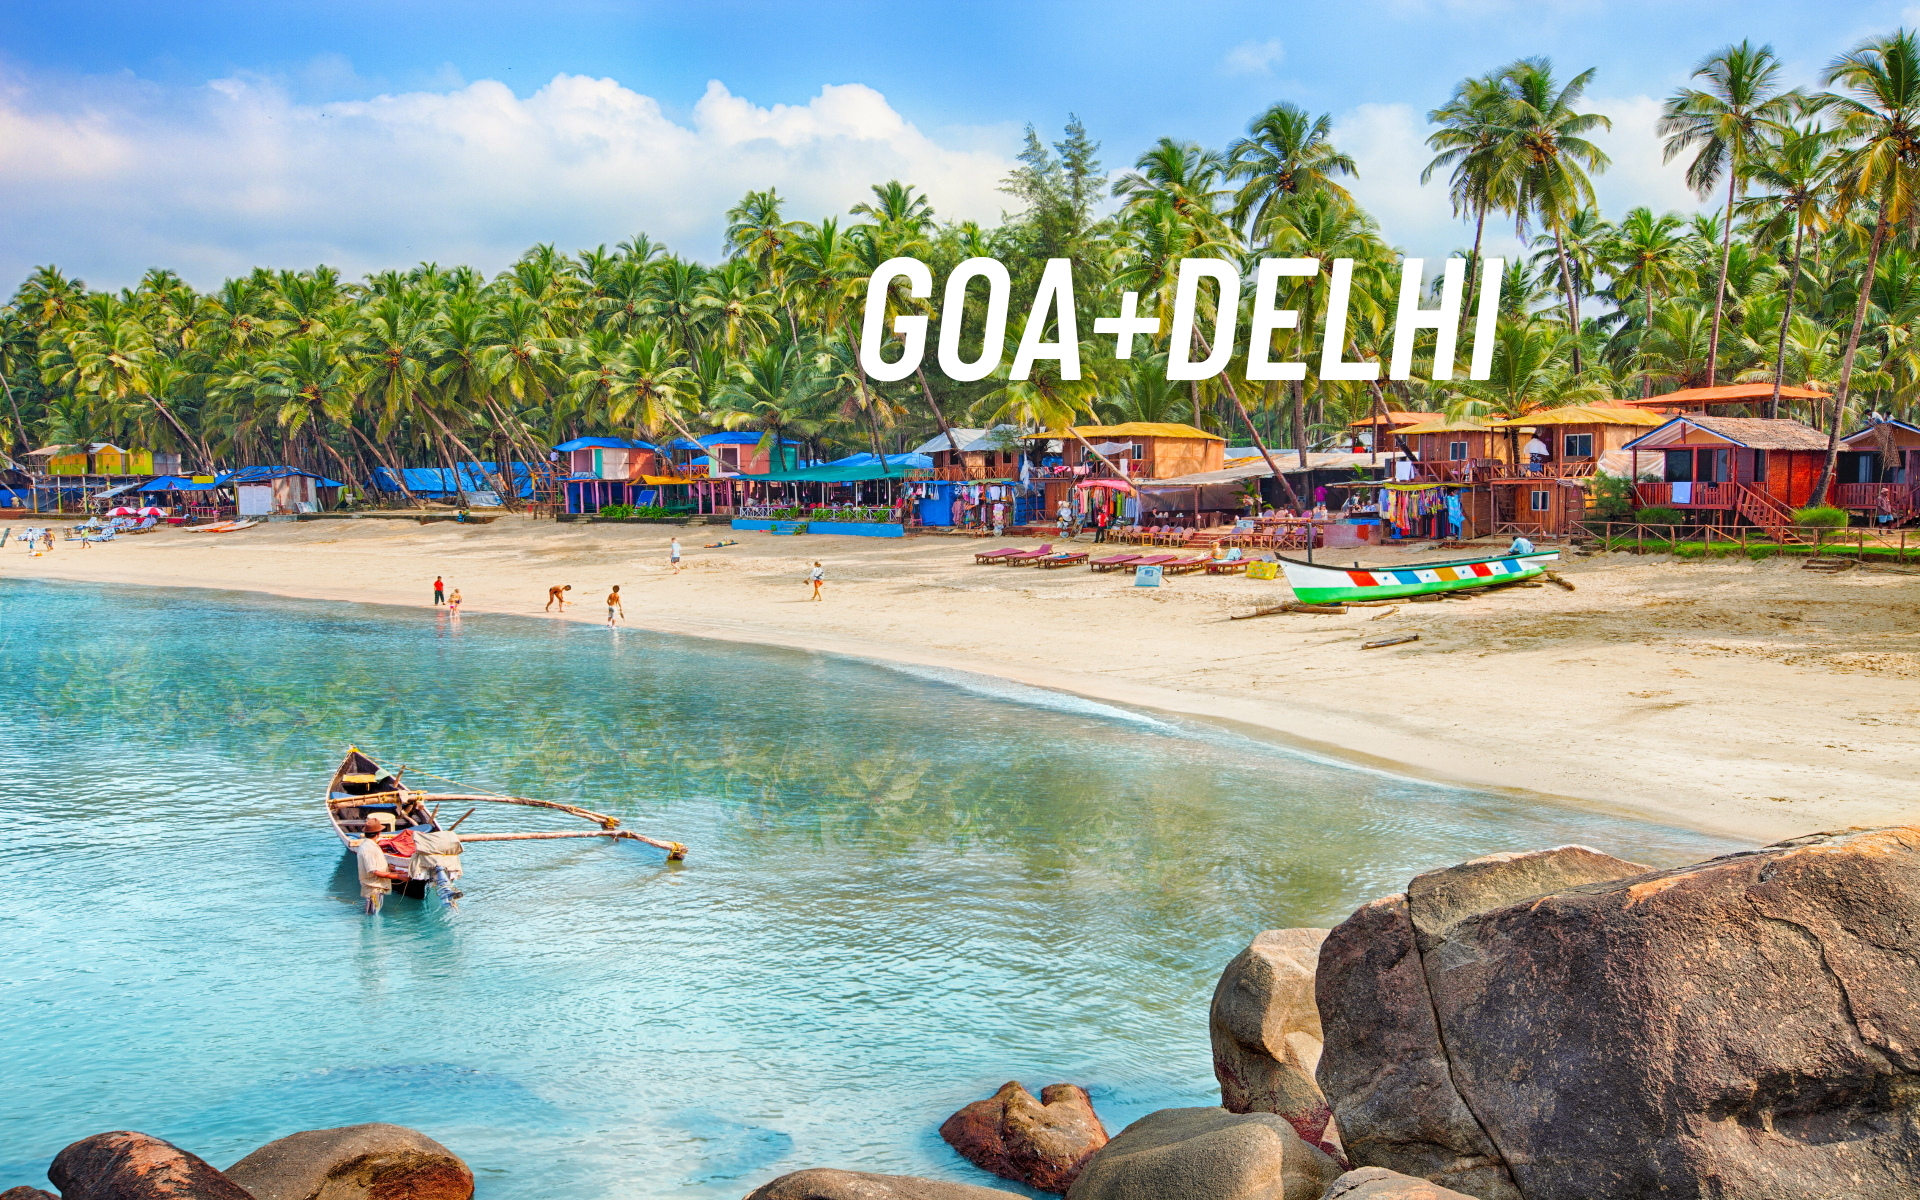 Goa and Delhi 5 Days Package